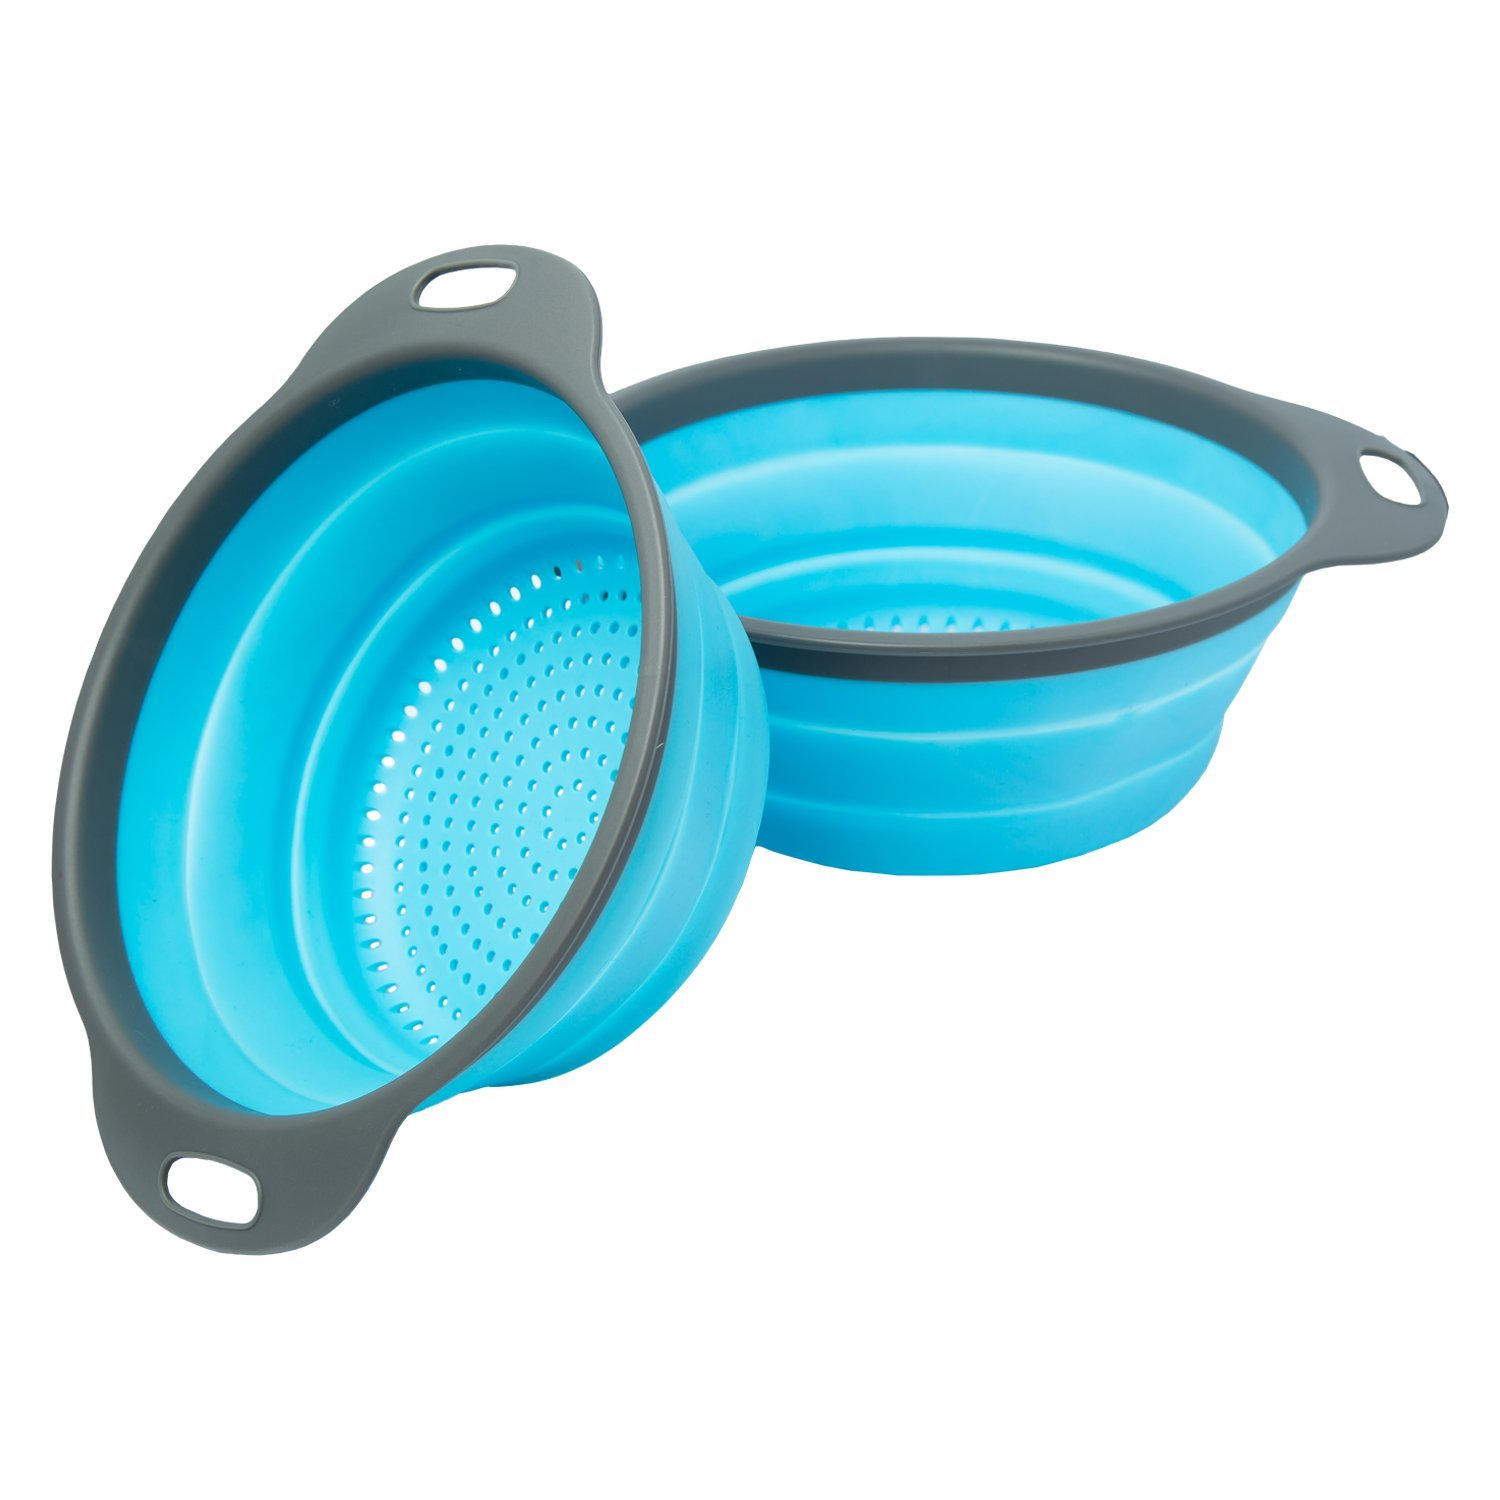 "2Pcs Collapsible Colander Set Food Grade Silicone Kitchen Fruit Vegetable Strainer Basket-11.5"" and 9.7"" Size Folding Strainer with Steady Base Dishwasher"